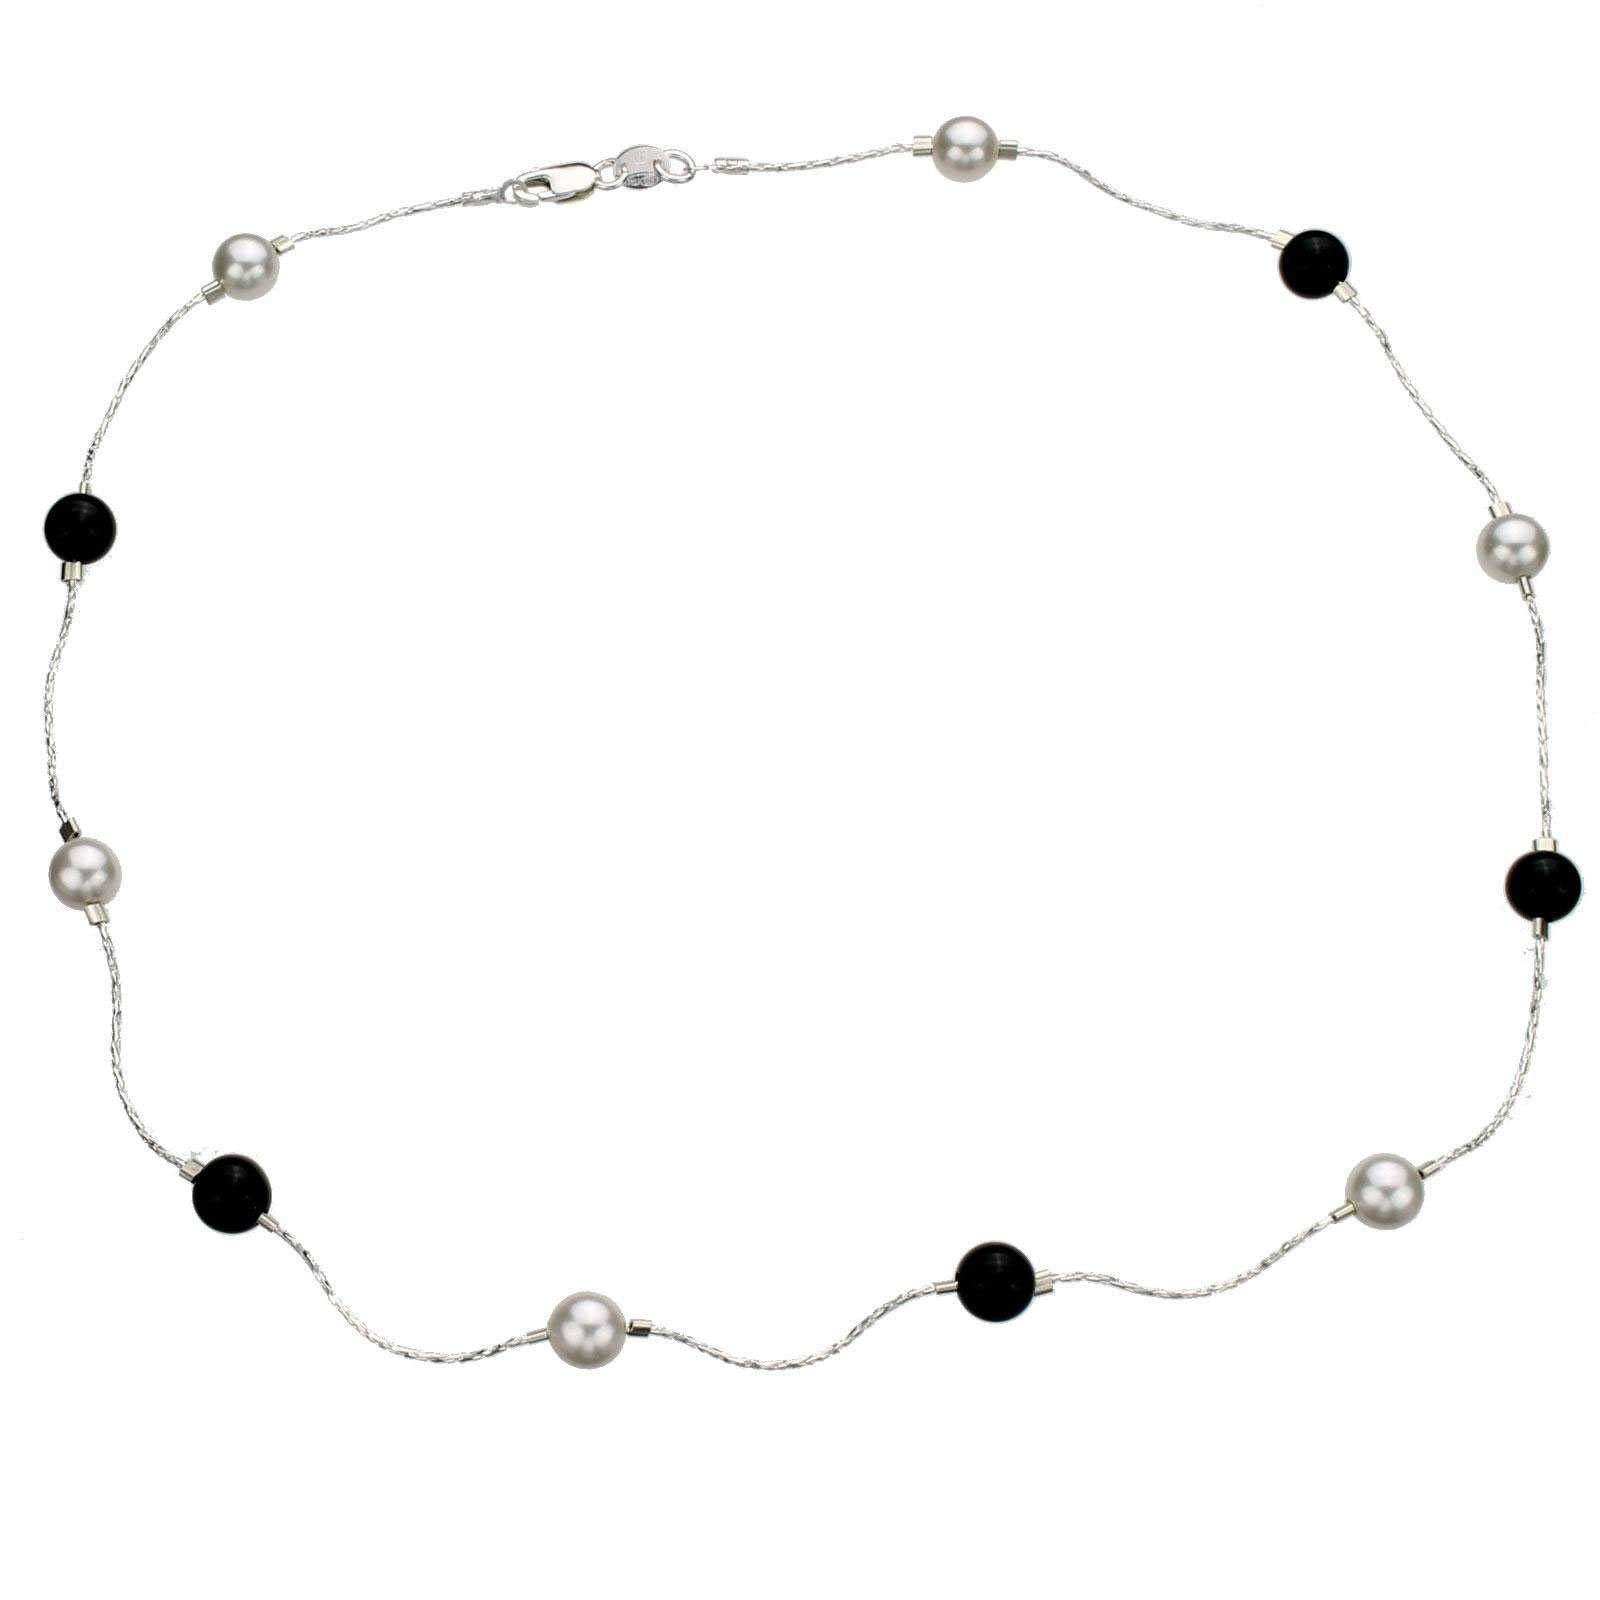 Sterling Silver Chain Necklace, Simulated Pearls Made with Swarovski Crystals, Onyx Stone Beads 18''